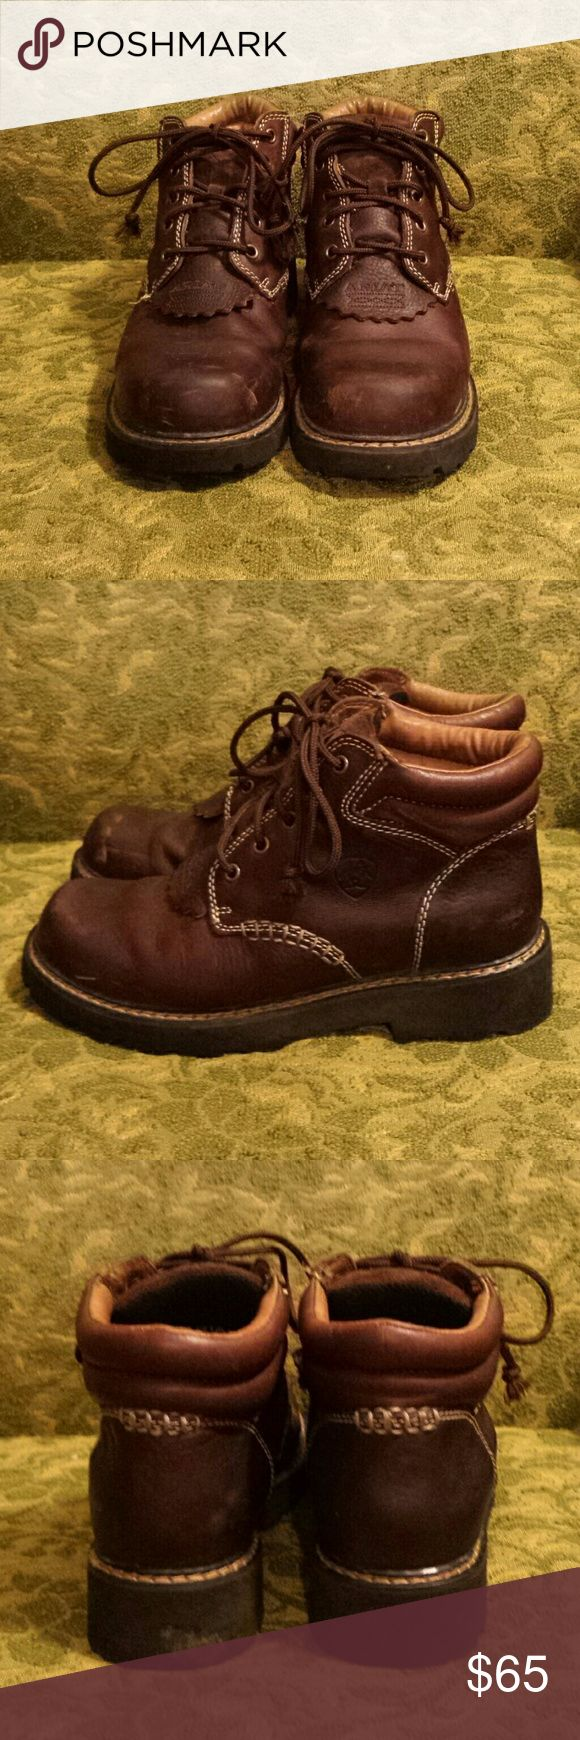 Ariat lace up boots Too many boots, these hafta go!!! Really comfy Ariat work boots. Some toe scuffing, not too much though. Great for wearing in the inclimate weather! Ariat Shoes Lace Up Boots